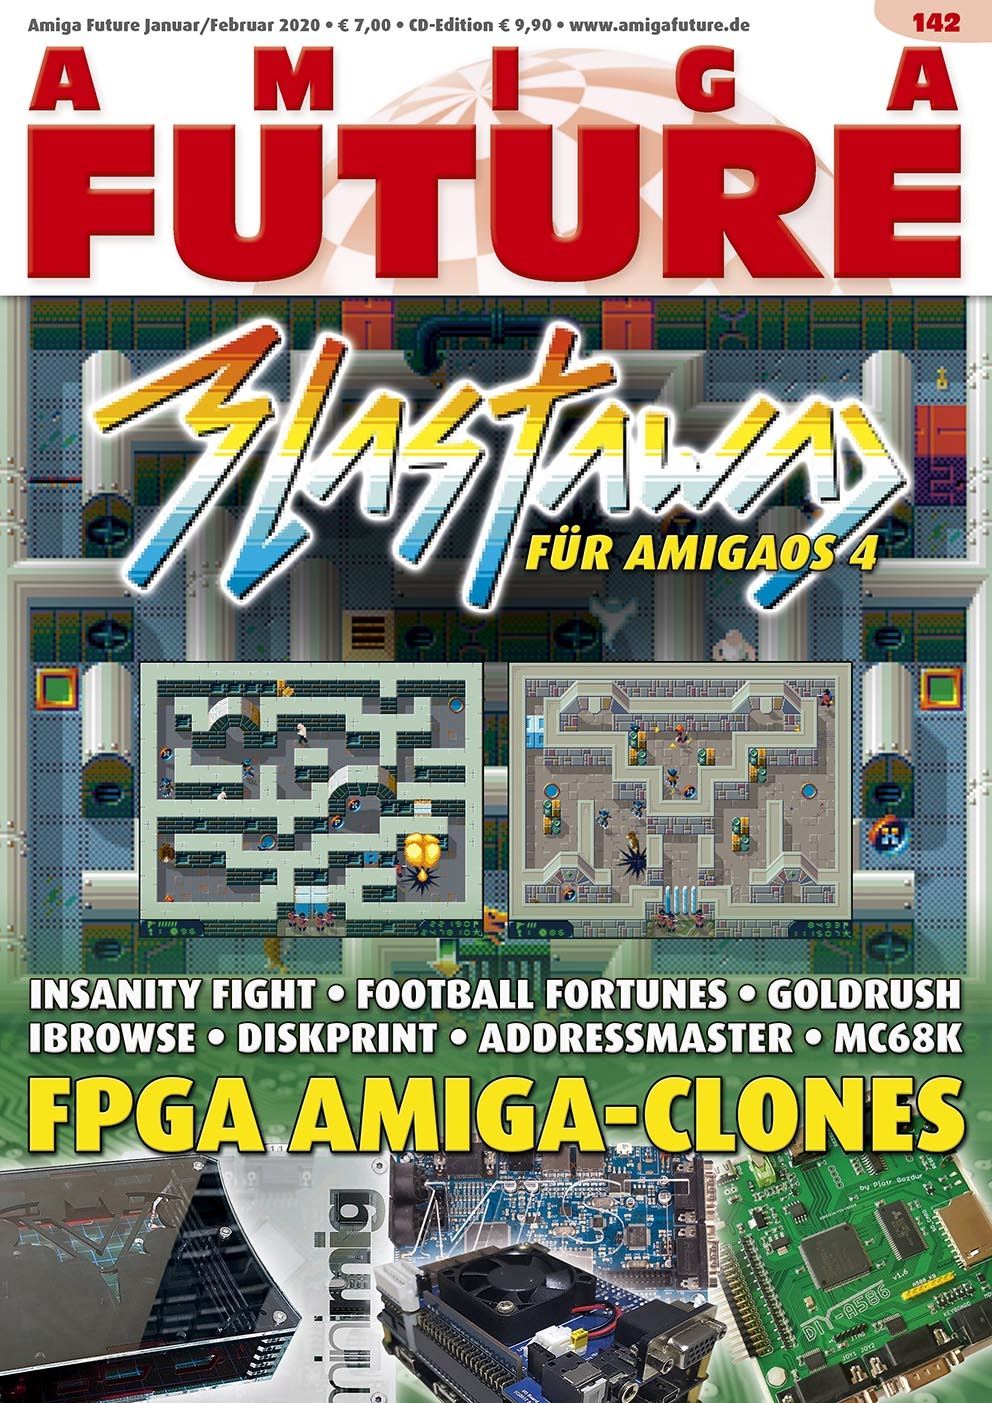 Amiga Future Issue 142